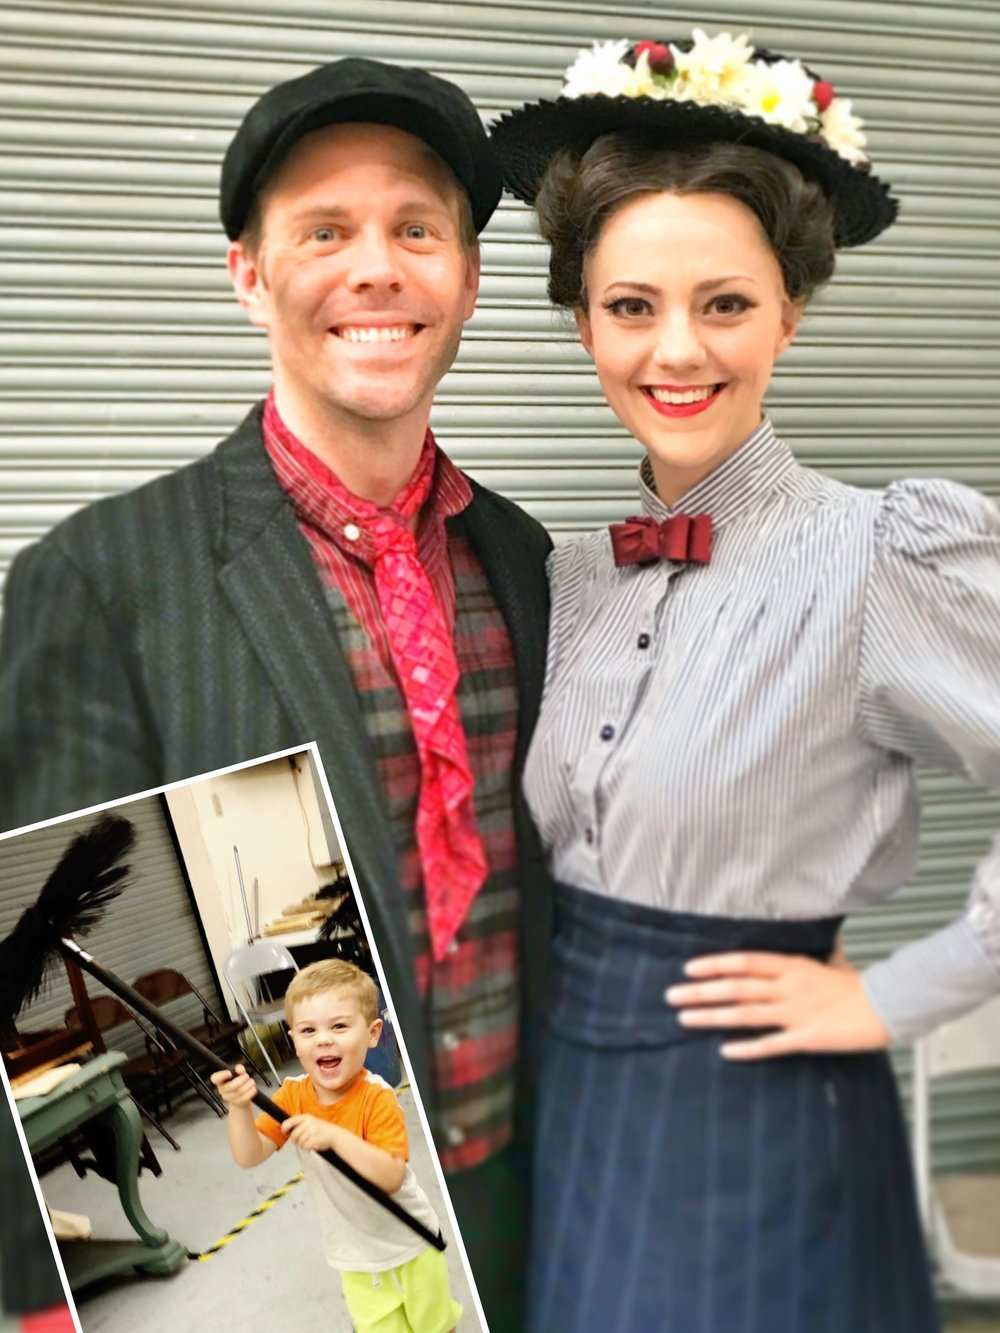 With Mallory Hawks as Mary. And a Chimney Sweep in training.